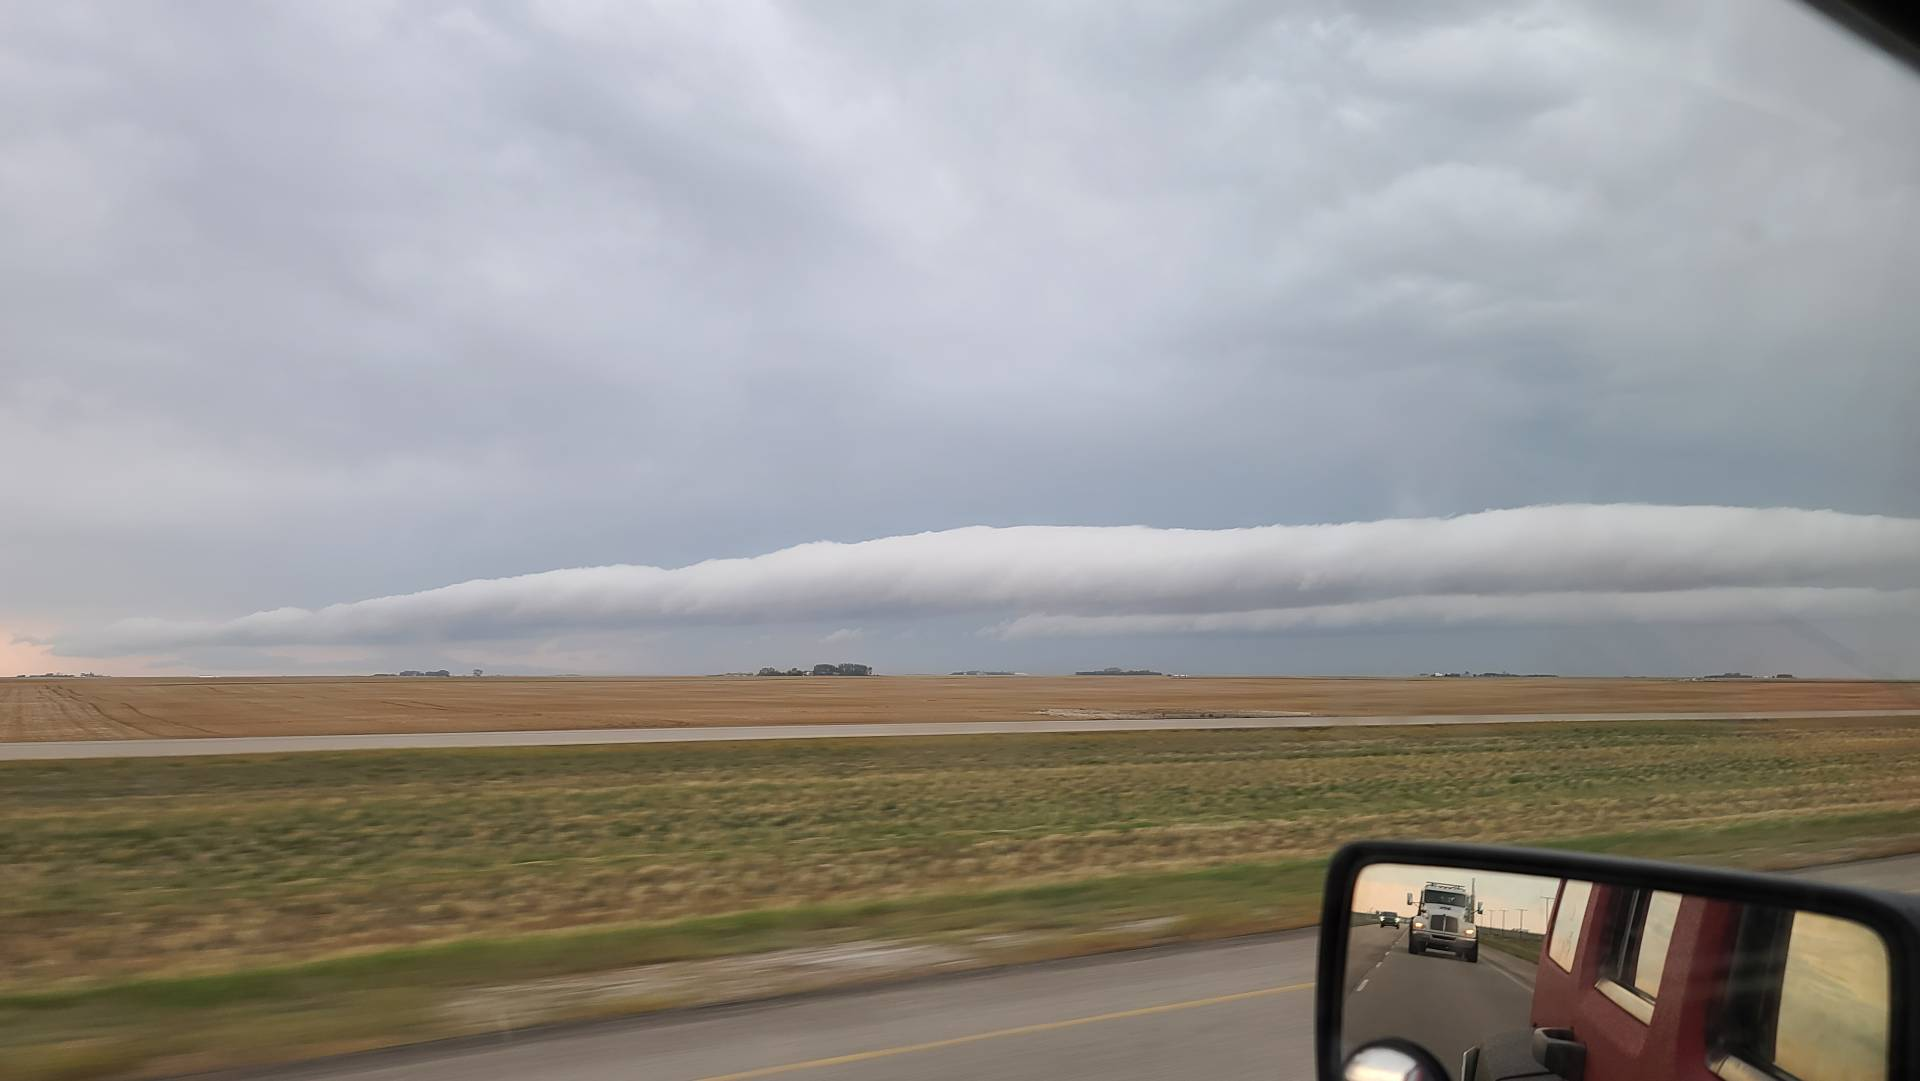 Big roll cloud pushing out ahead of Dying thunderstorm south of Regina, SK 10:40am #skstorm